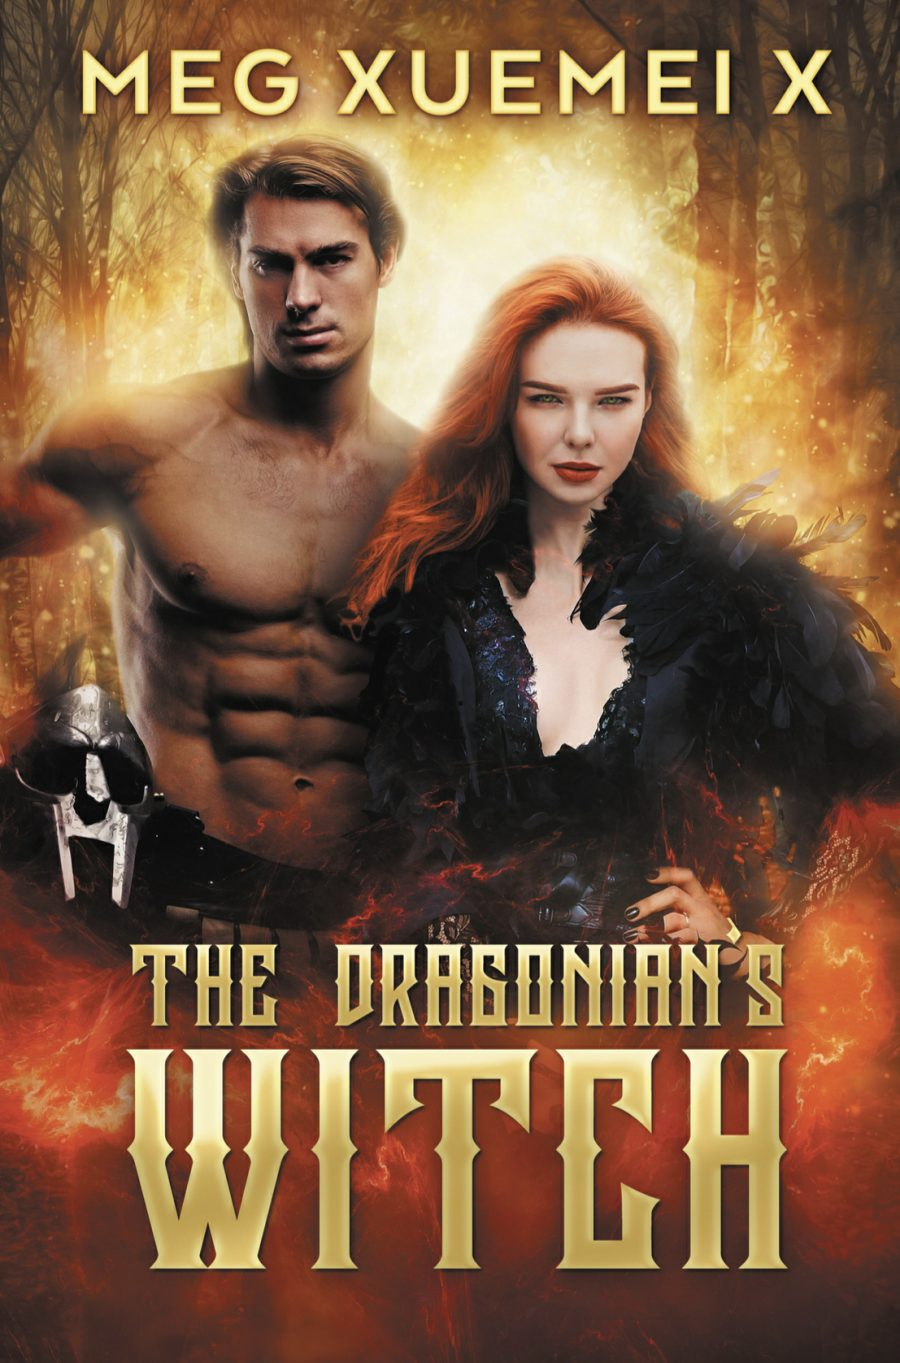 The Dragonian's Witch by Meg Xuemeix – A Book Review